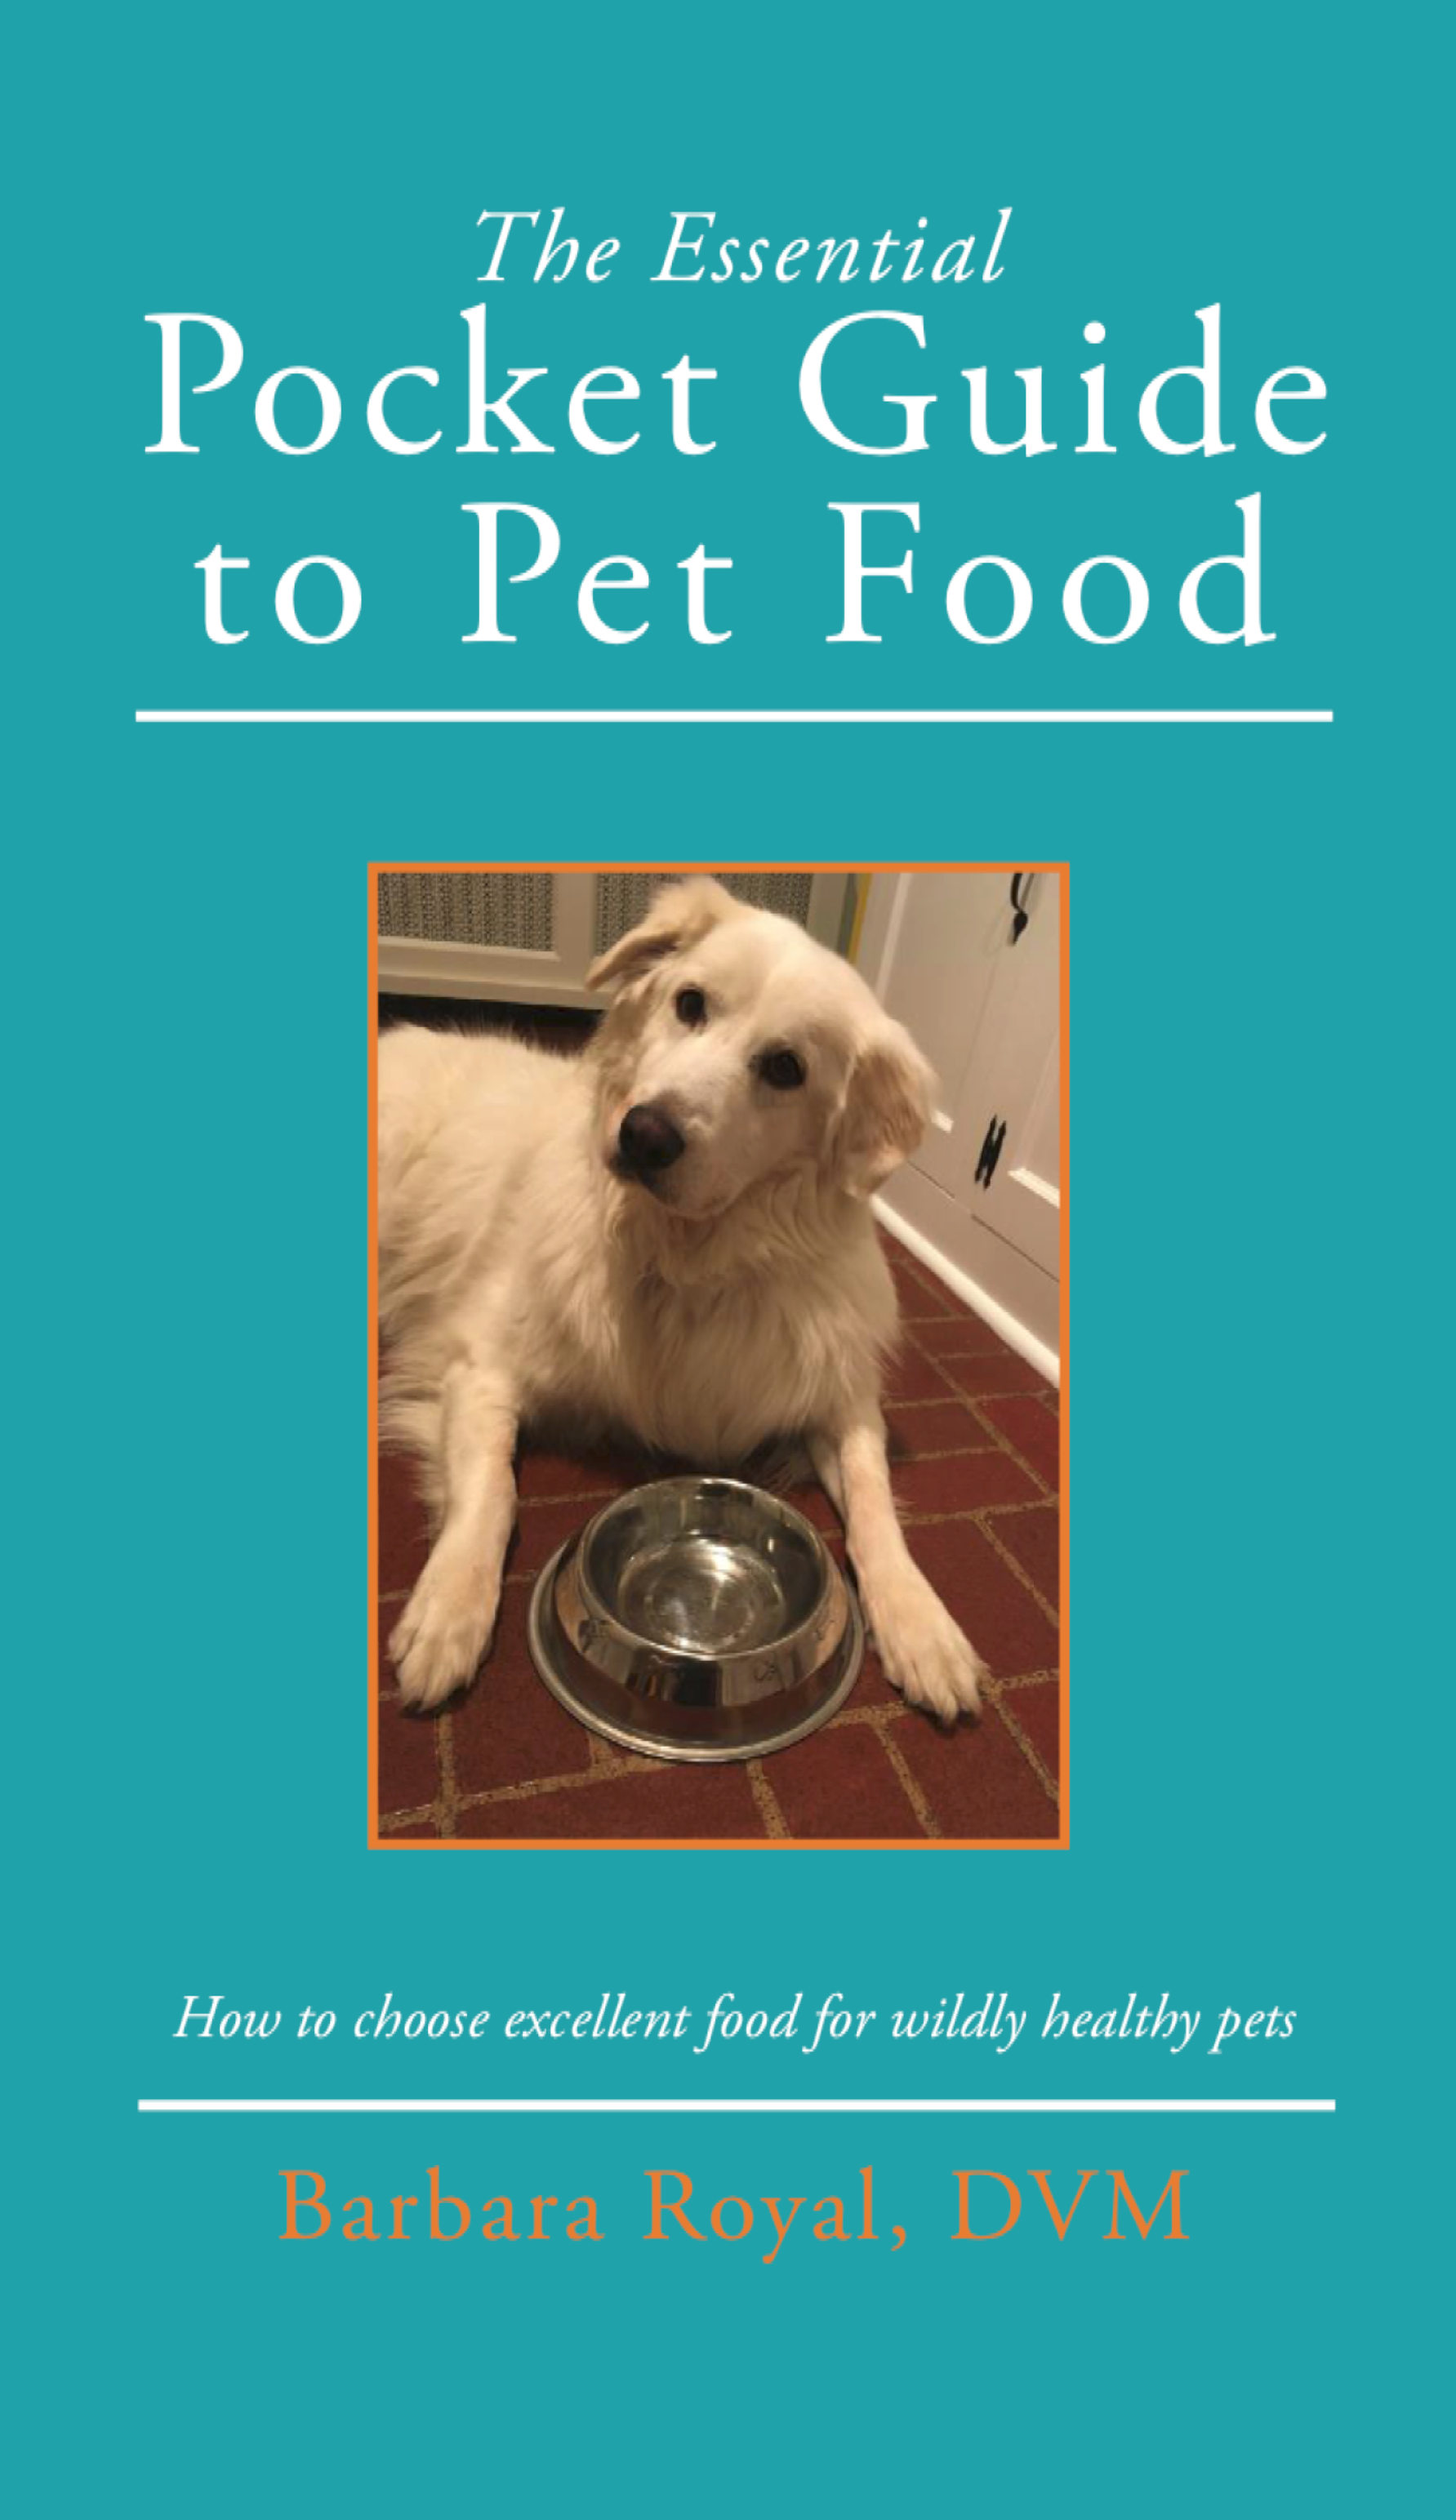 Dr. Royal's Pocket Guide to Pet Food Now Available!